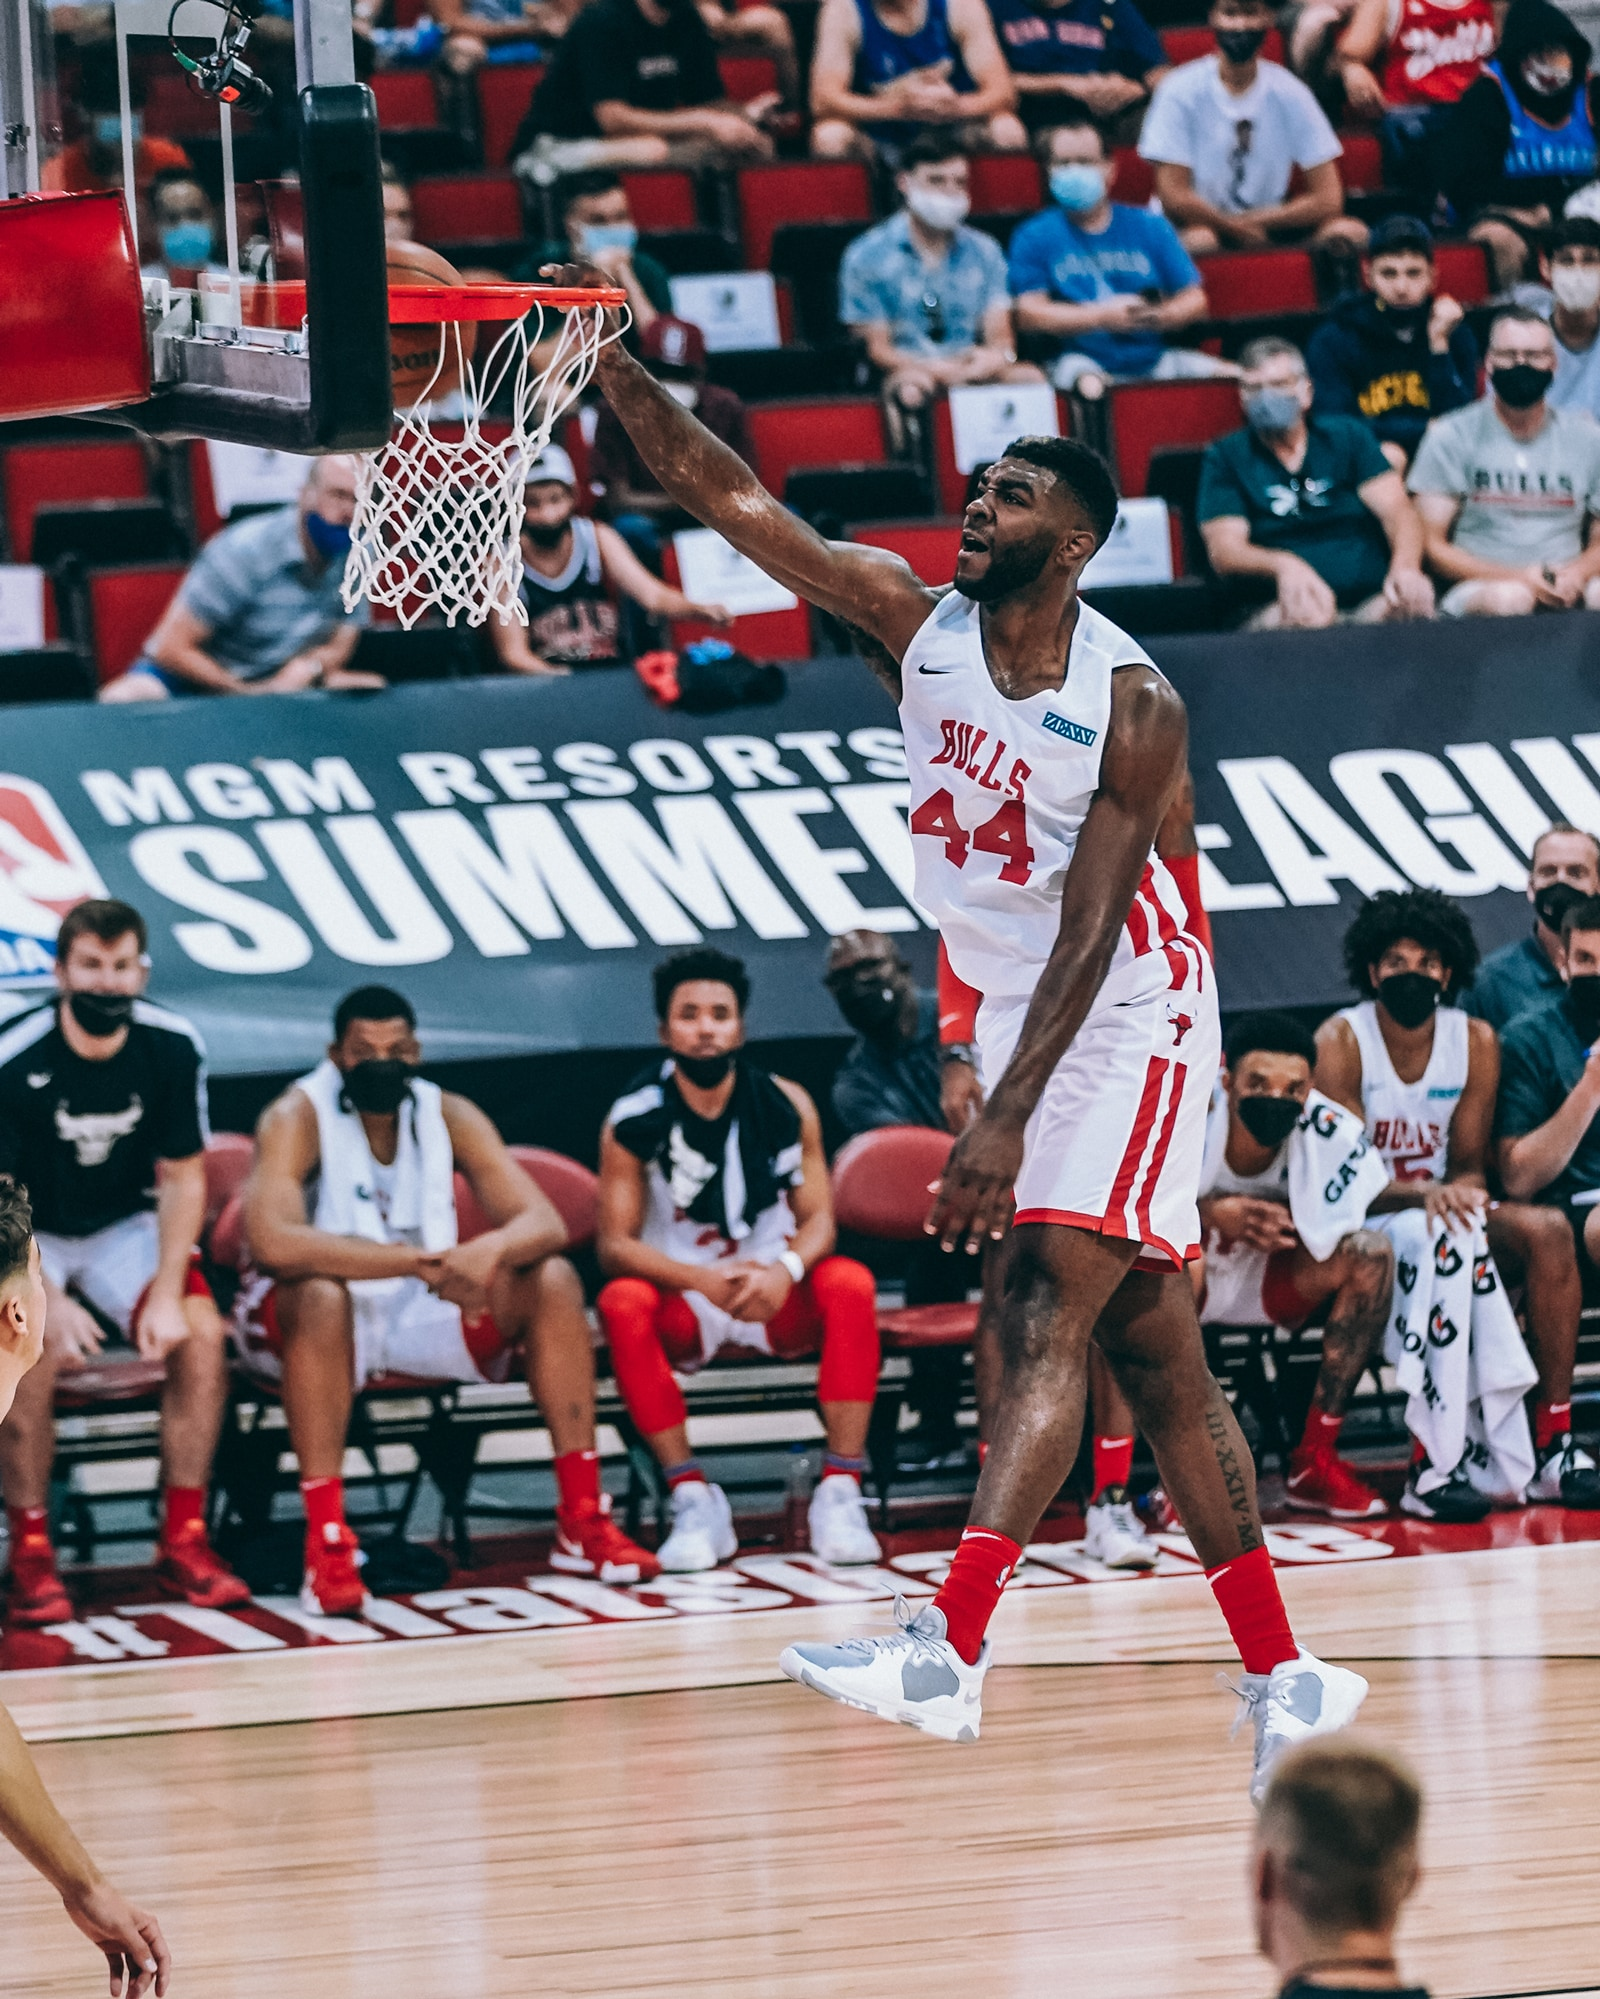 Patrick Williams skies for a one-hand jam vs. New Orleans